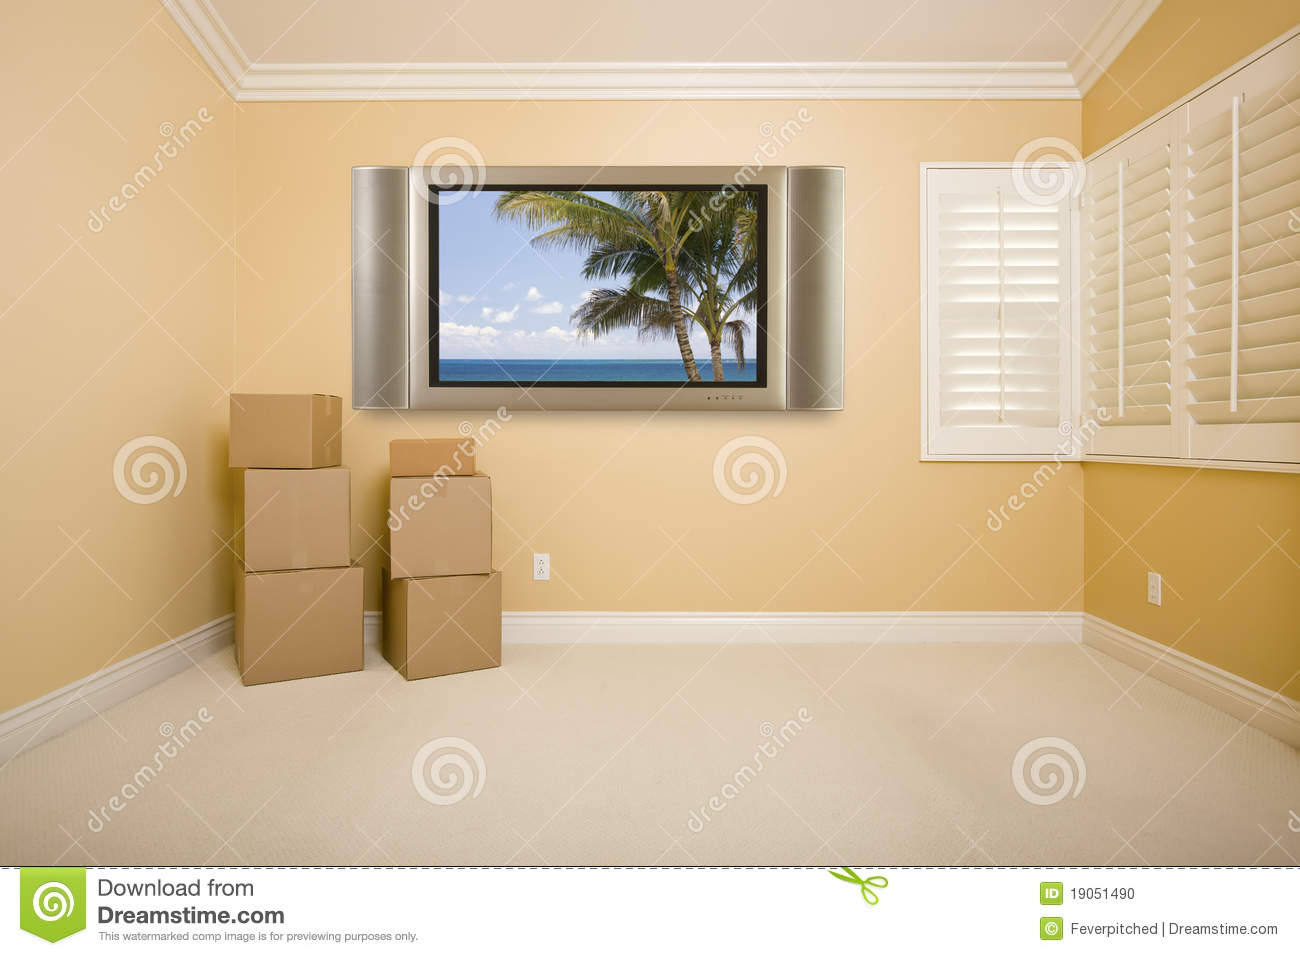 Flat Television On Wall In Empty Room With Boxes Stock